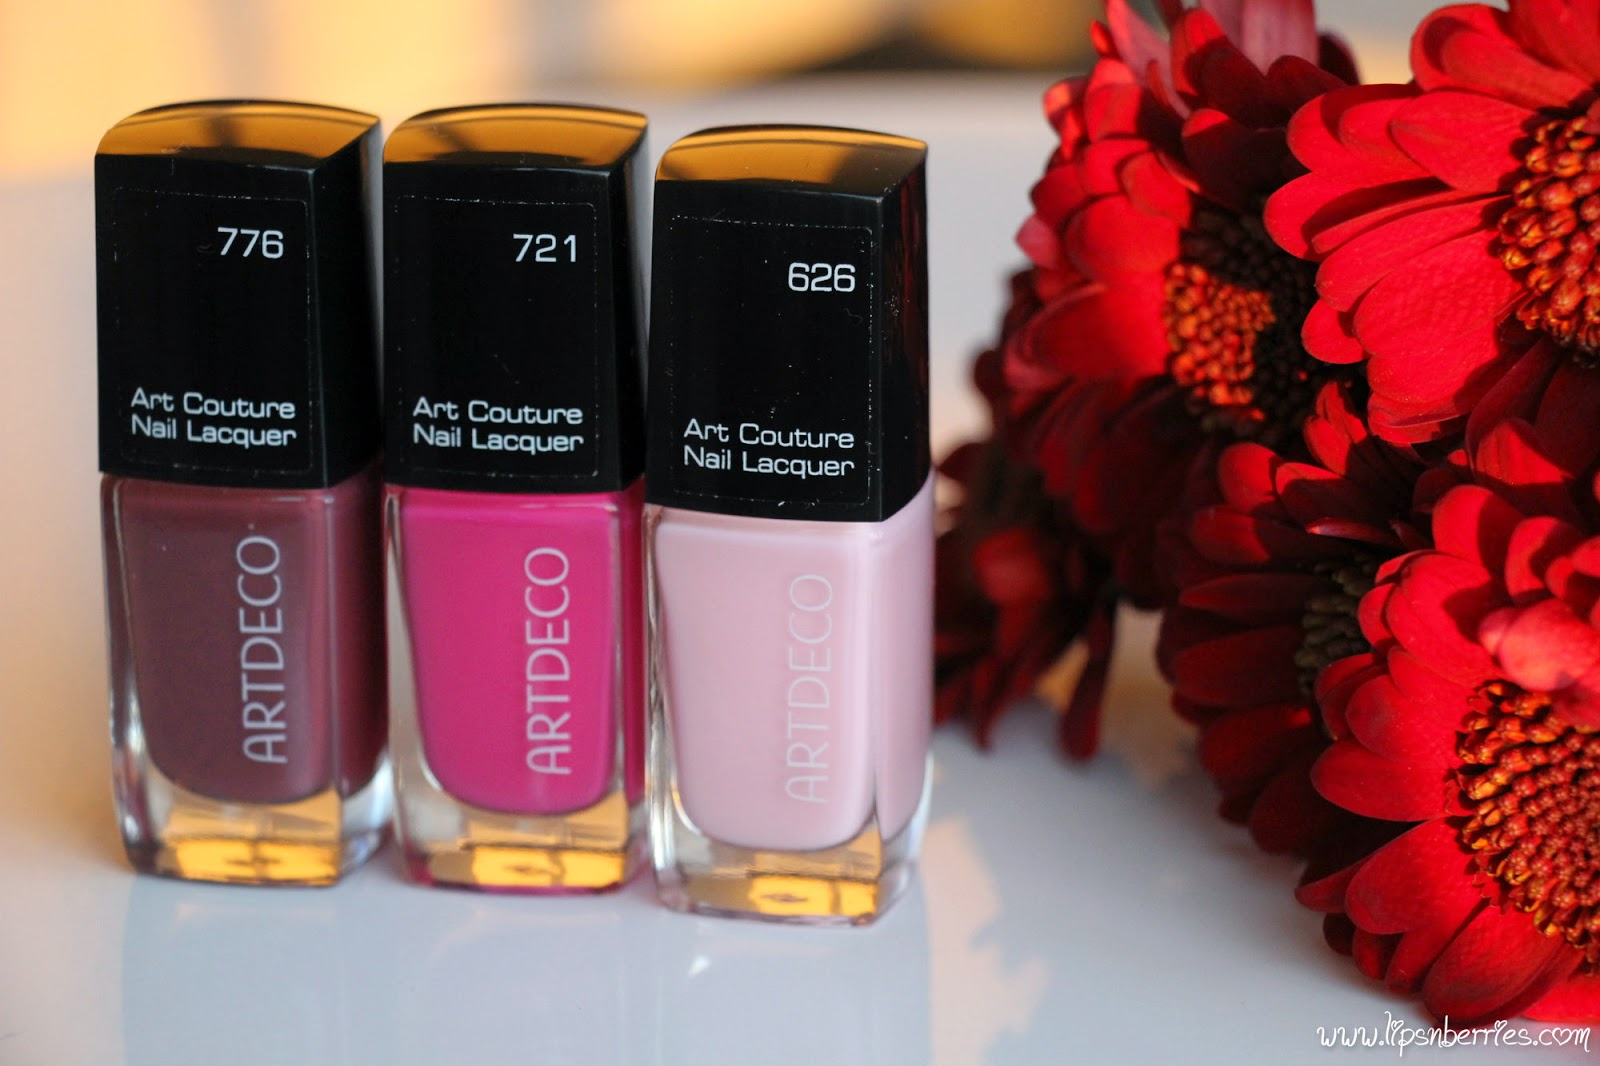 Artdeco Art Couture Nail Lacquer In 626 721 776 Review Notd